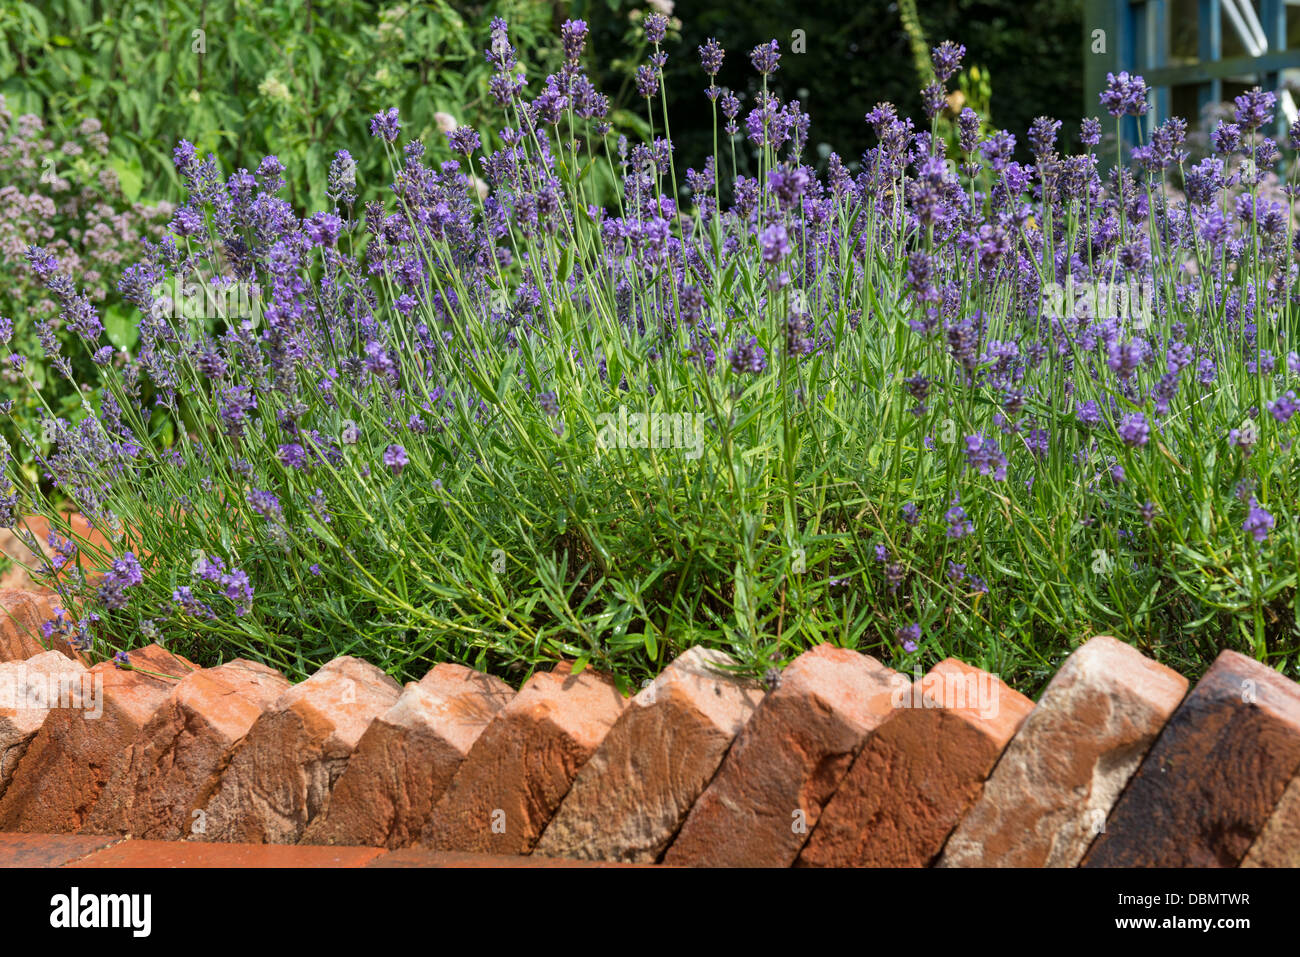 Brick Path Edging In A Sawtooth Design Bordering A Lavender Bed.   Stock  Image